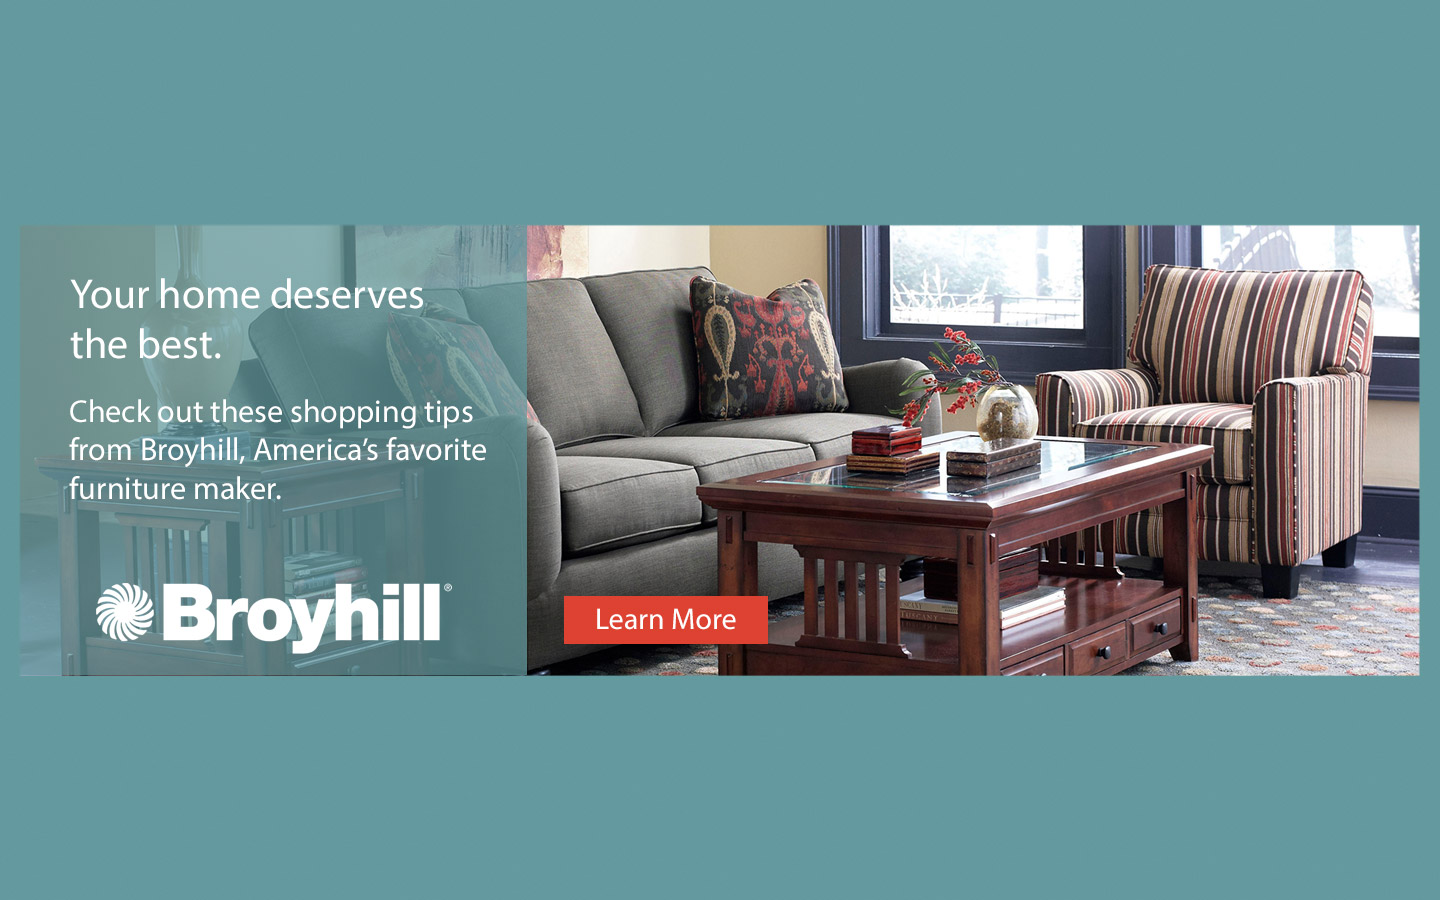 ... Broyhill Wood And Upholstery Shopping Tips Q2 2017 ...